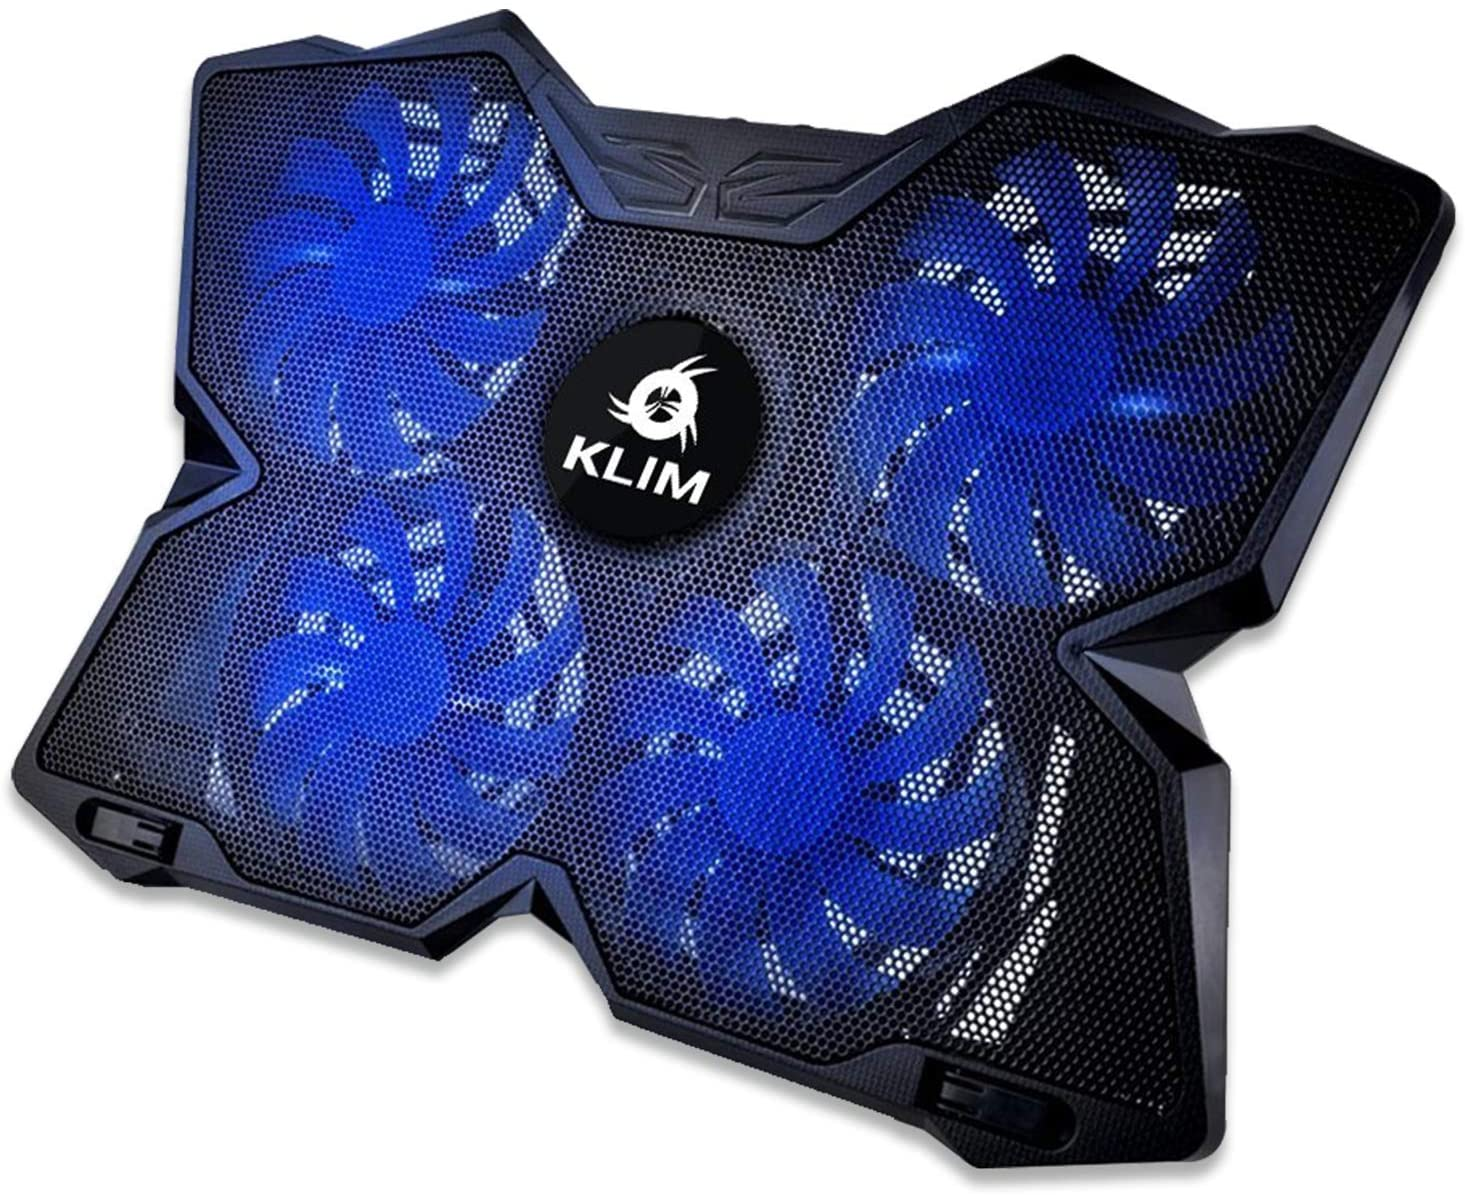 Wind Laptop Cooling Pad by KLIM - Laptop Cooling Pads